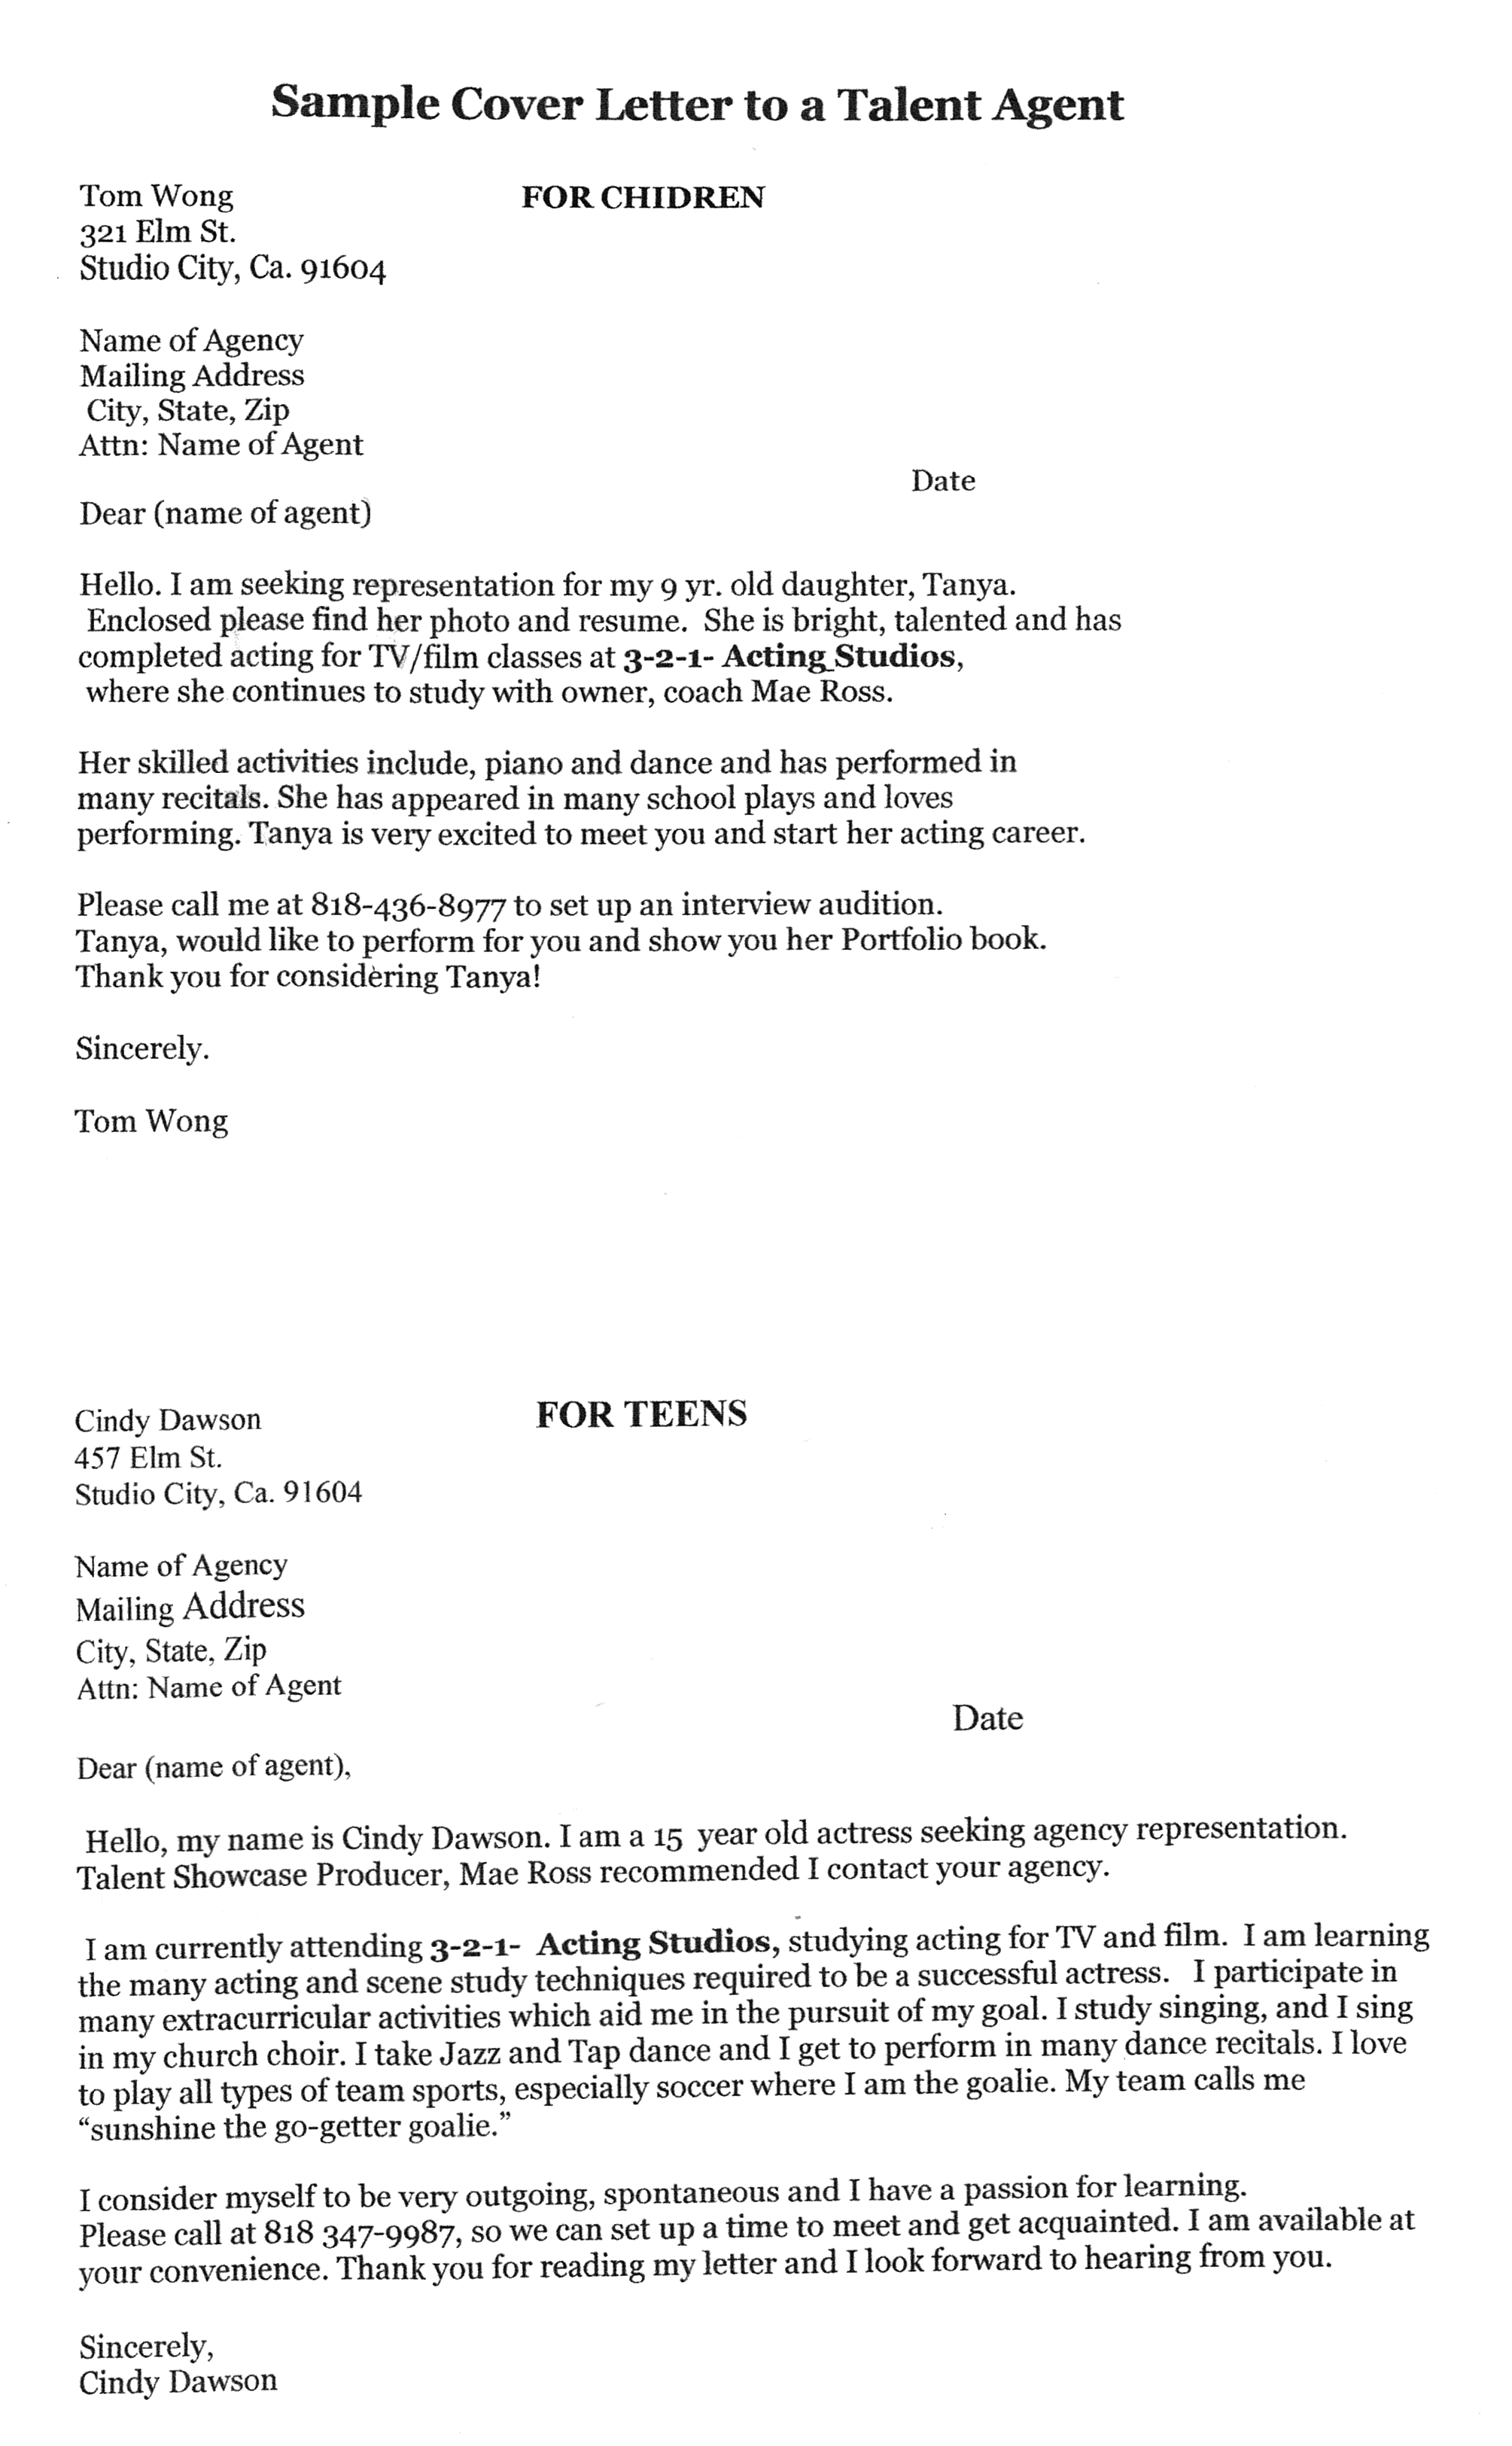 good sample cover letters to talent agents - Your Cover Letter